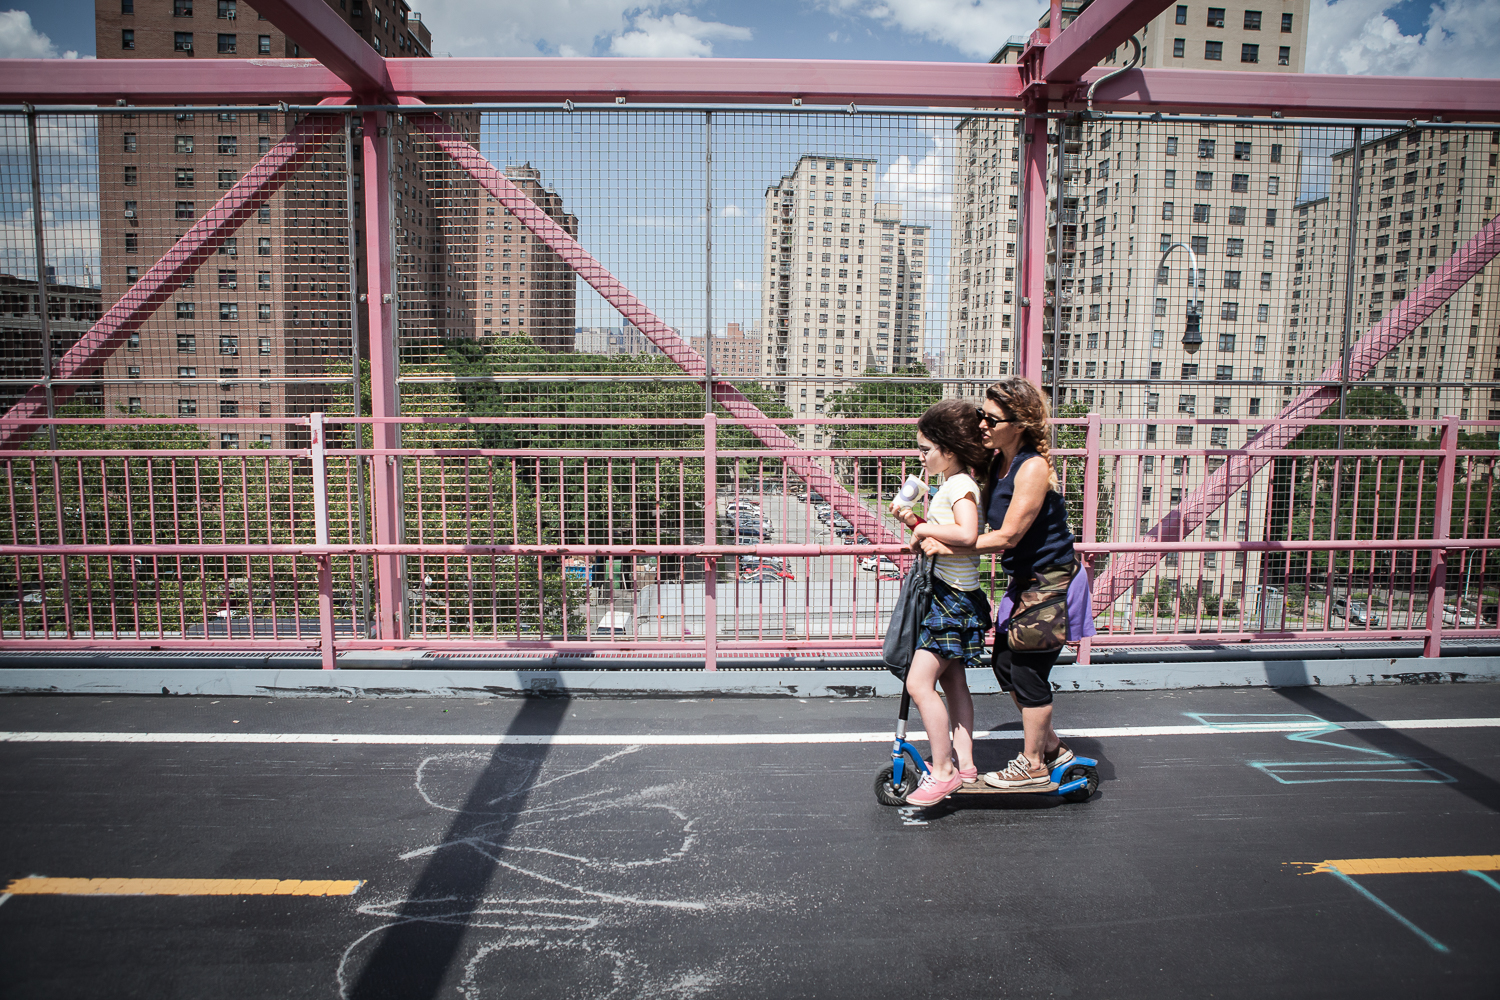 Mother and daughter riding their scooter on the Williamsburg Bridge, New York